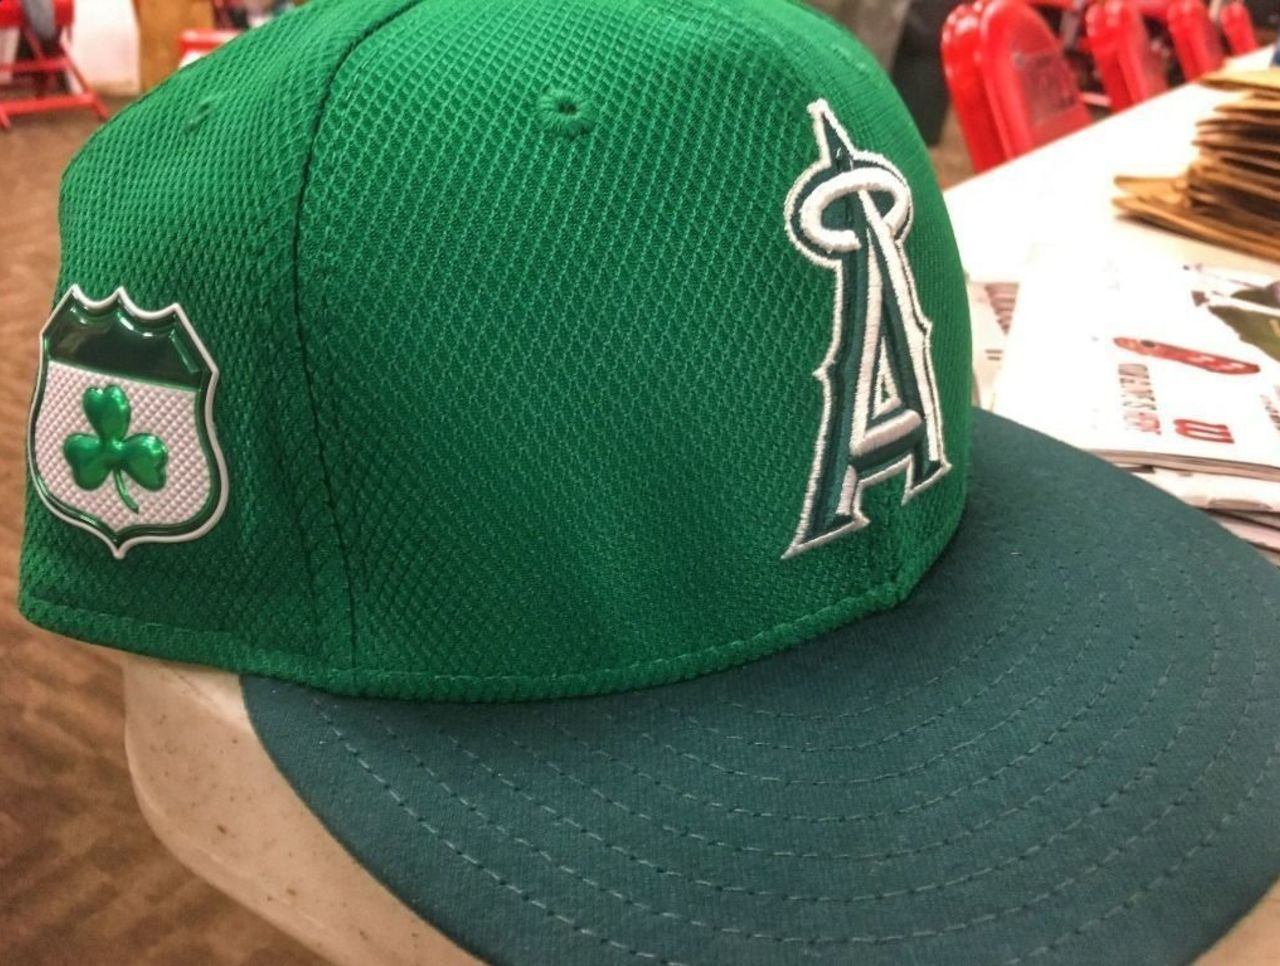 look mlb teams wear lucky green hats on st patrick u0027s day